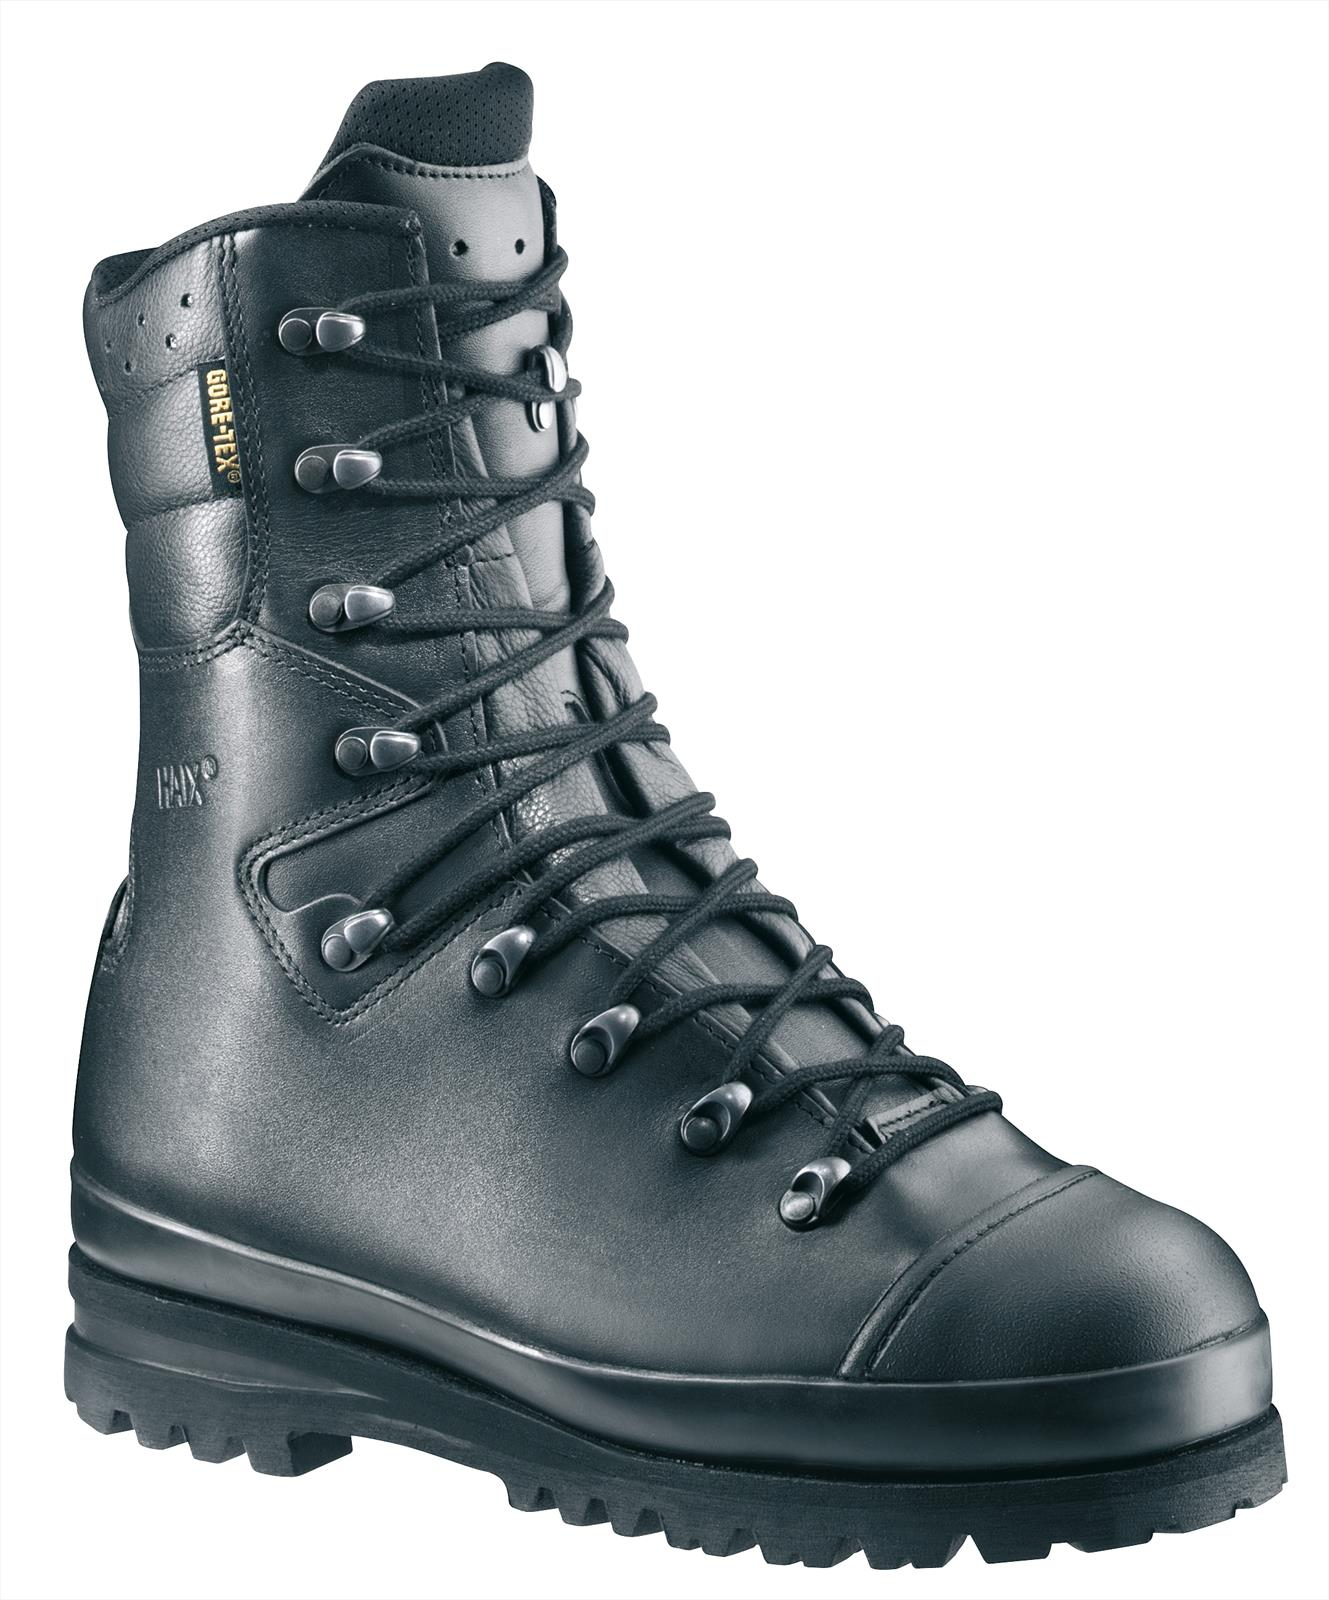 Haix Tibet Forest Chainsaw Safety Boots